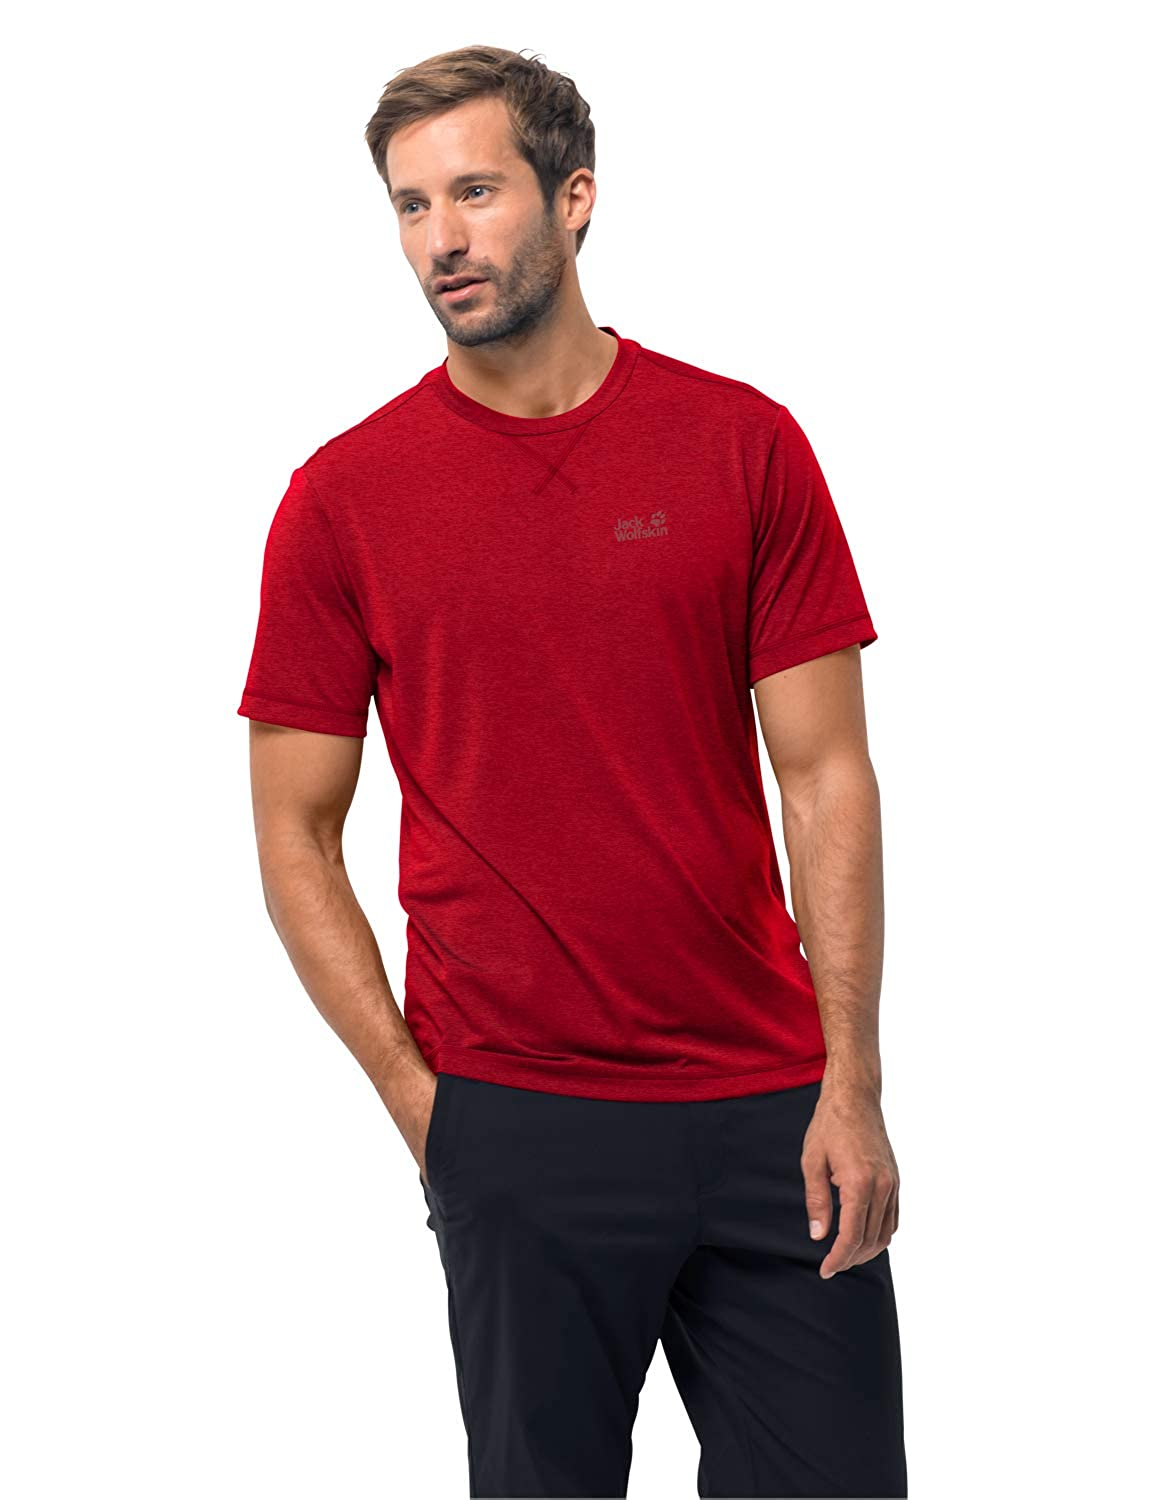 Jack Wolfskin Crosstrail T Mens Quick Drying and Odor Inhibiting T-Shirt